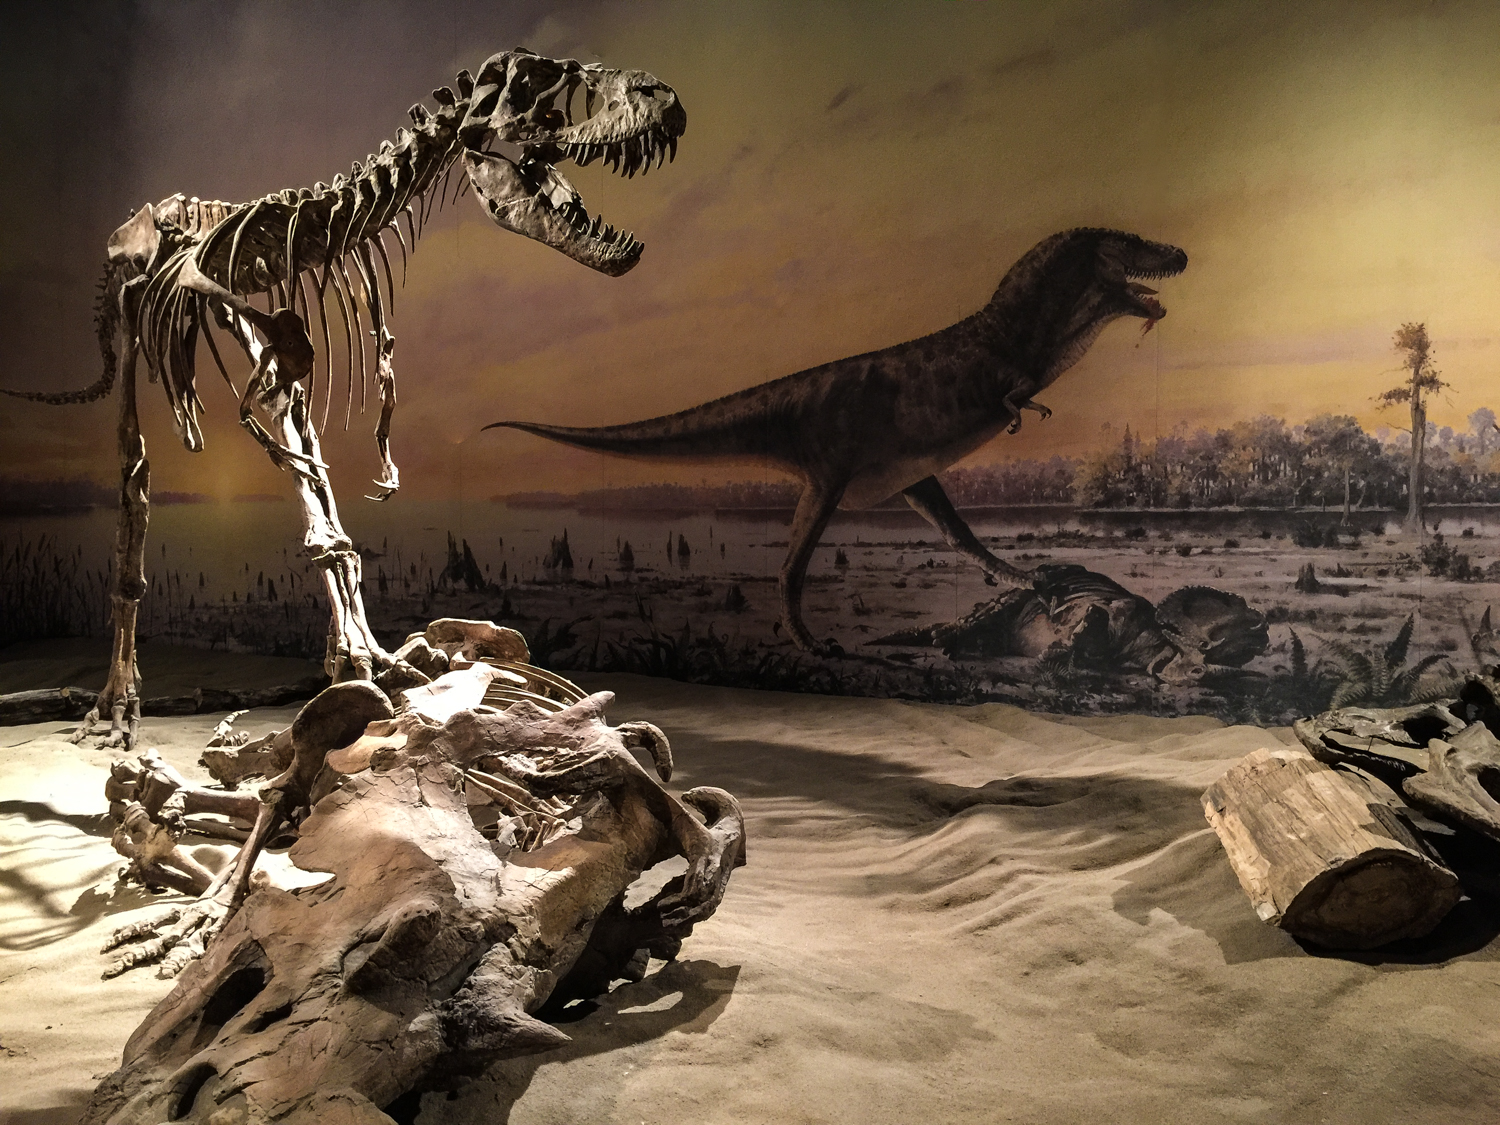 One of the exhibits in the Royal Tyrrell Museum